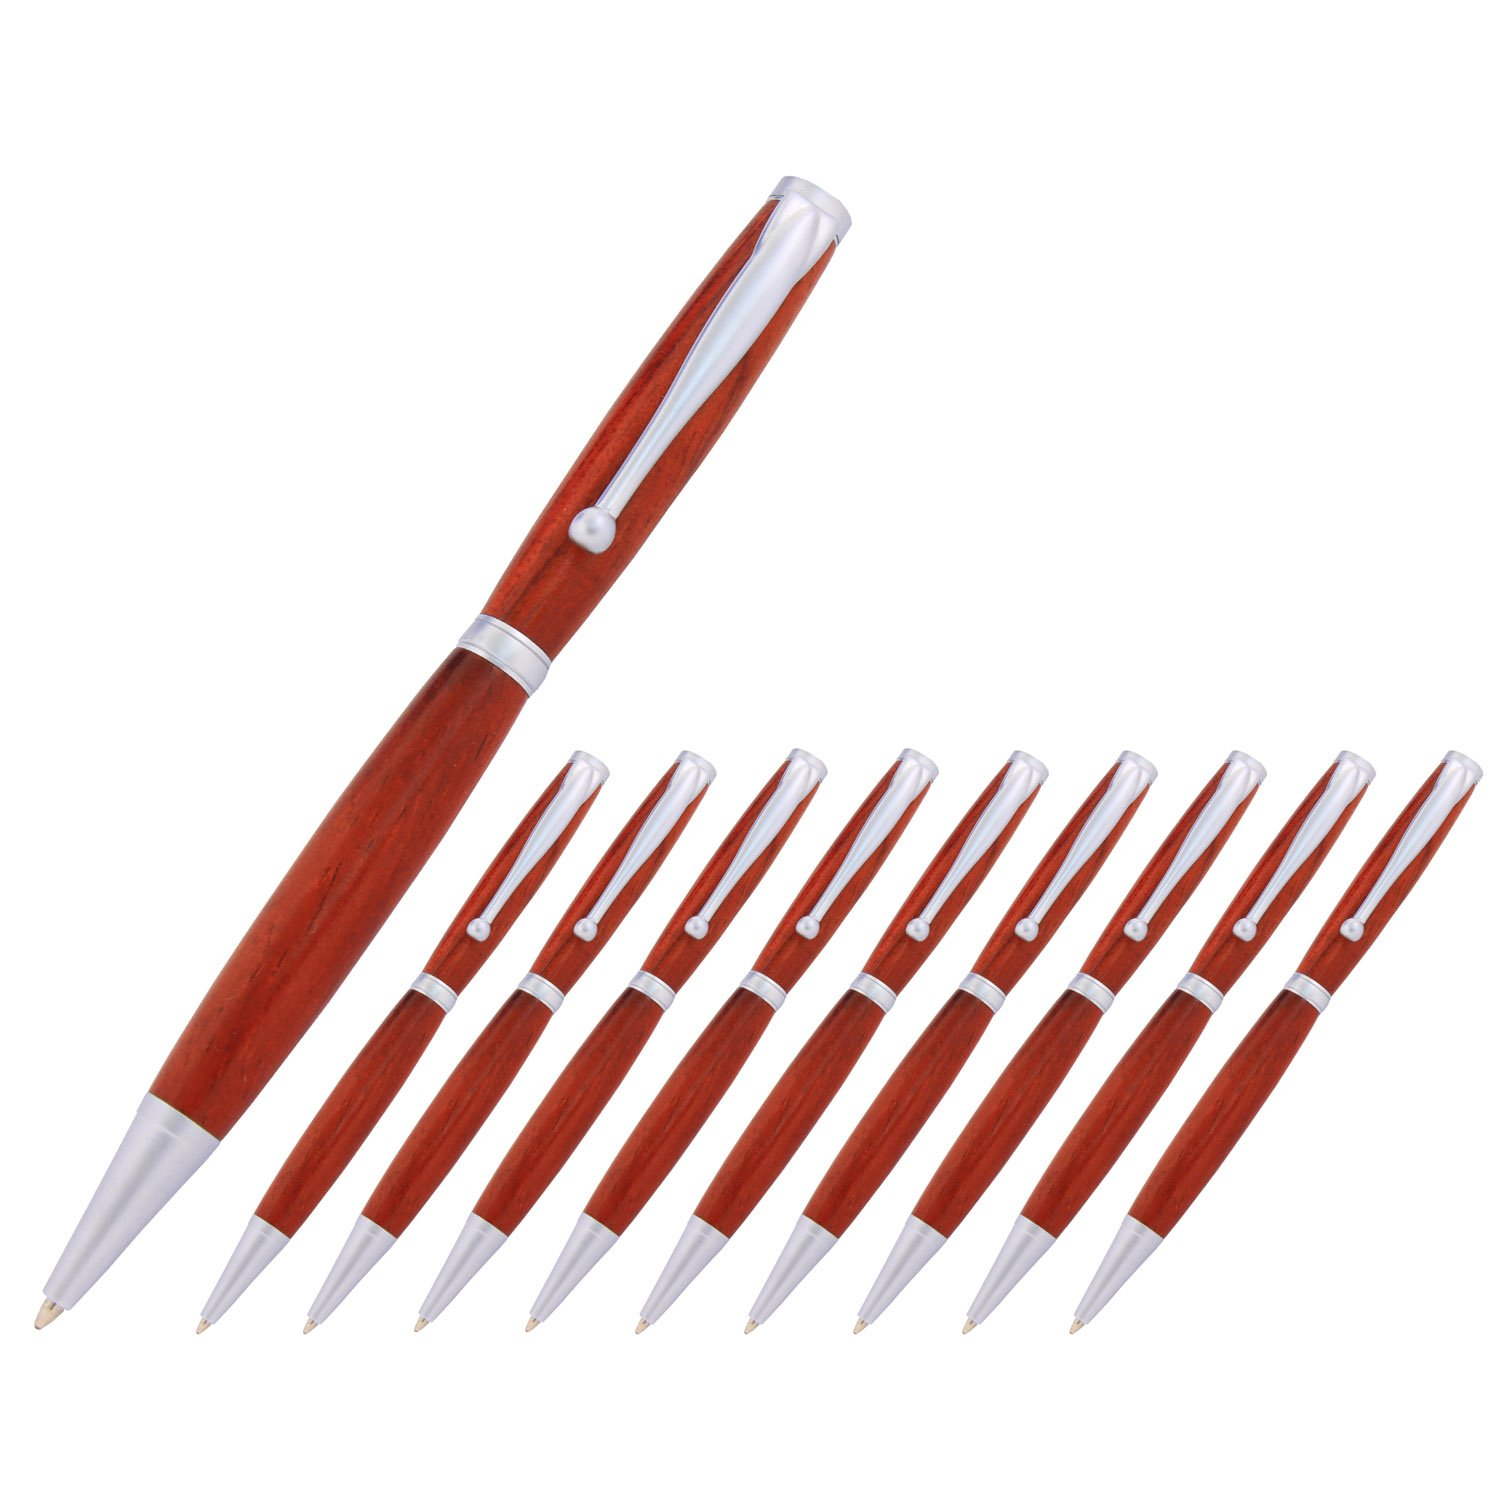 Legacy Woodturning Fancy Pen Kit Multi-Packs The Instrument Store Fancy/_Gun/_Metal/_10 Many Finishes